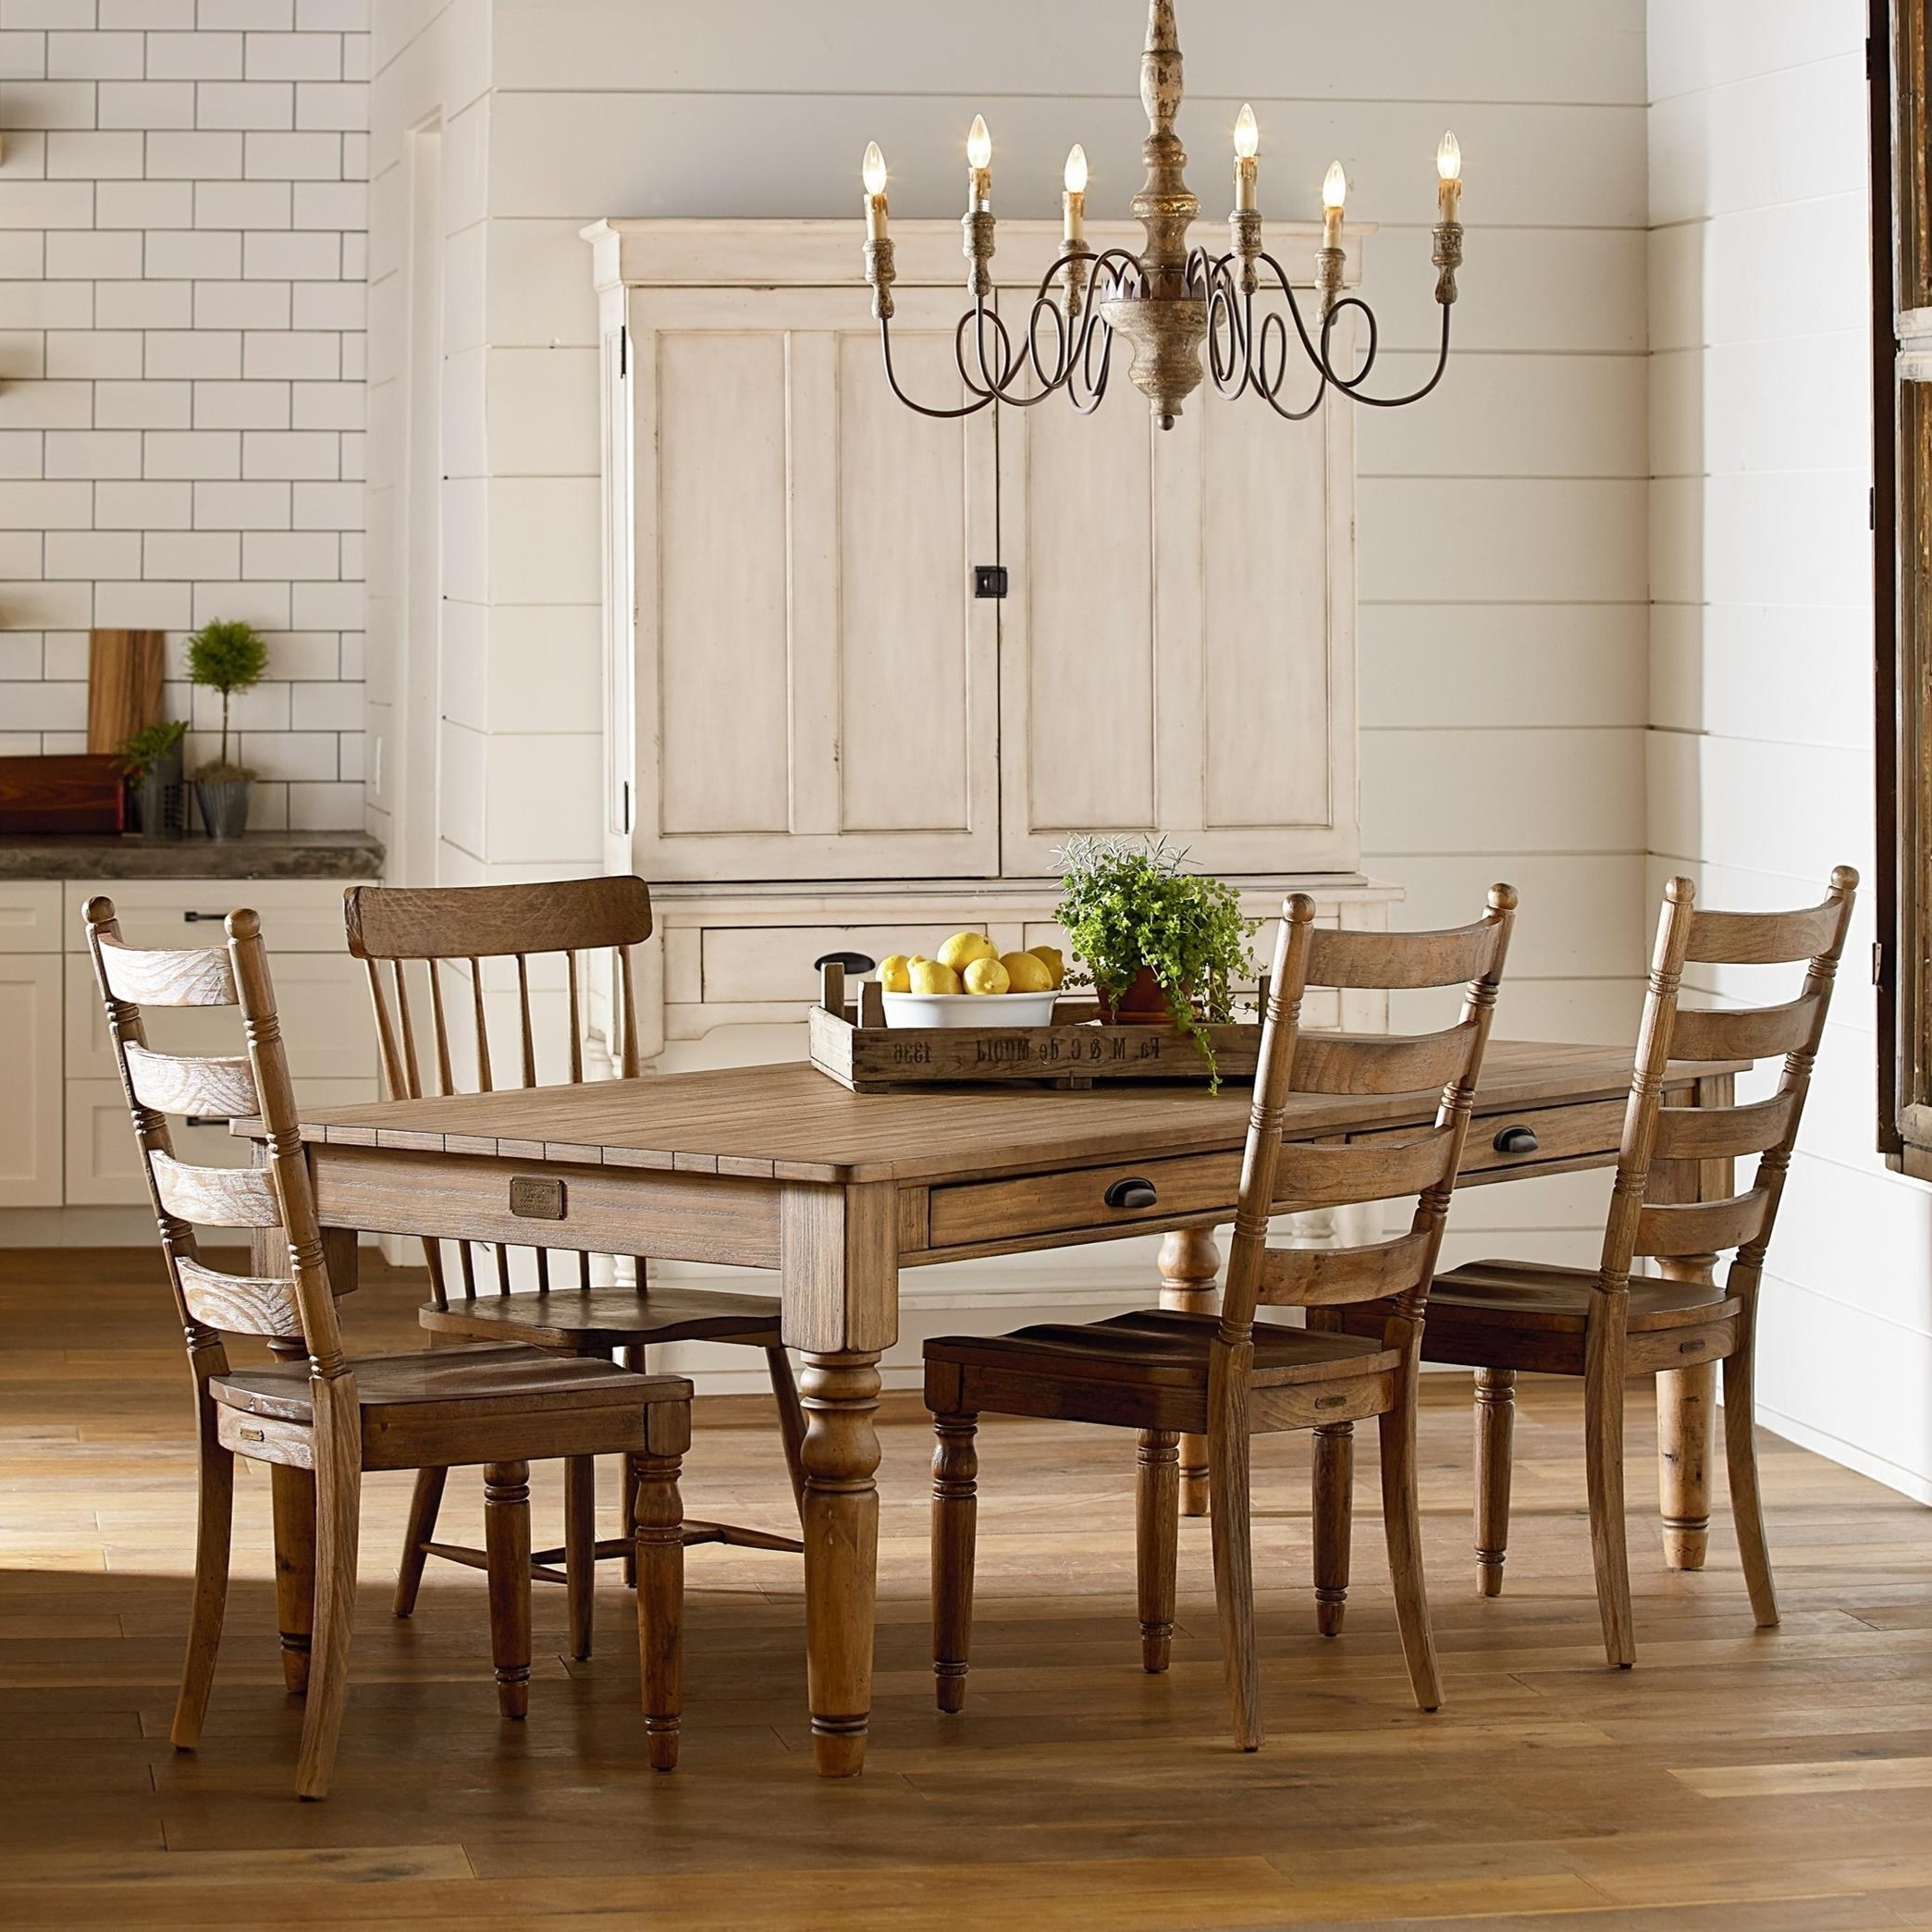 Magnolia Table — Latest News, Images And Photos — Crypticimages With Regard To Most Popular Magnolia Home White Keeping 96 Inch Dining Tables (View 13 of 25)